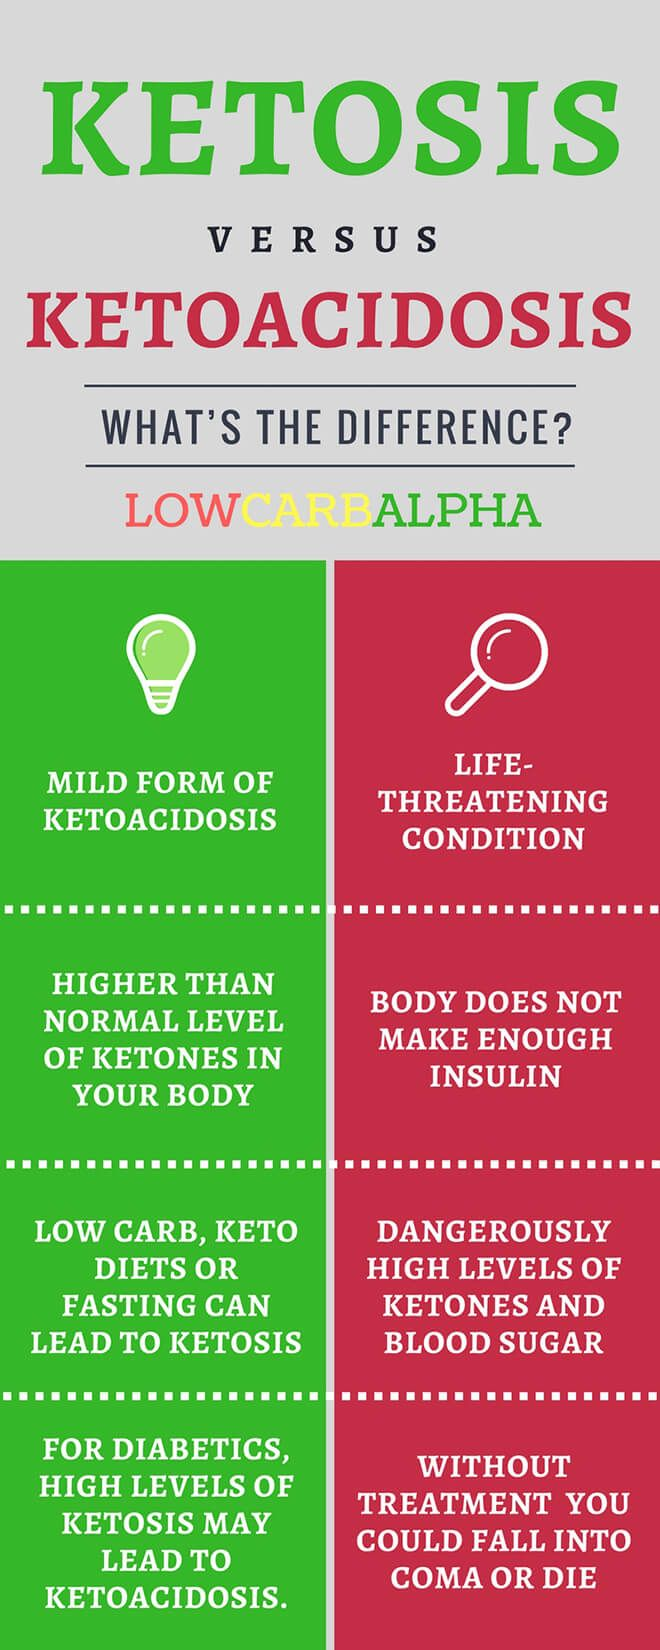 Ketoacidosis (DKA) Vs Ketosis What's The Difference